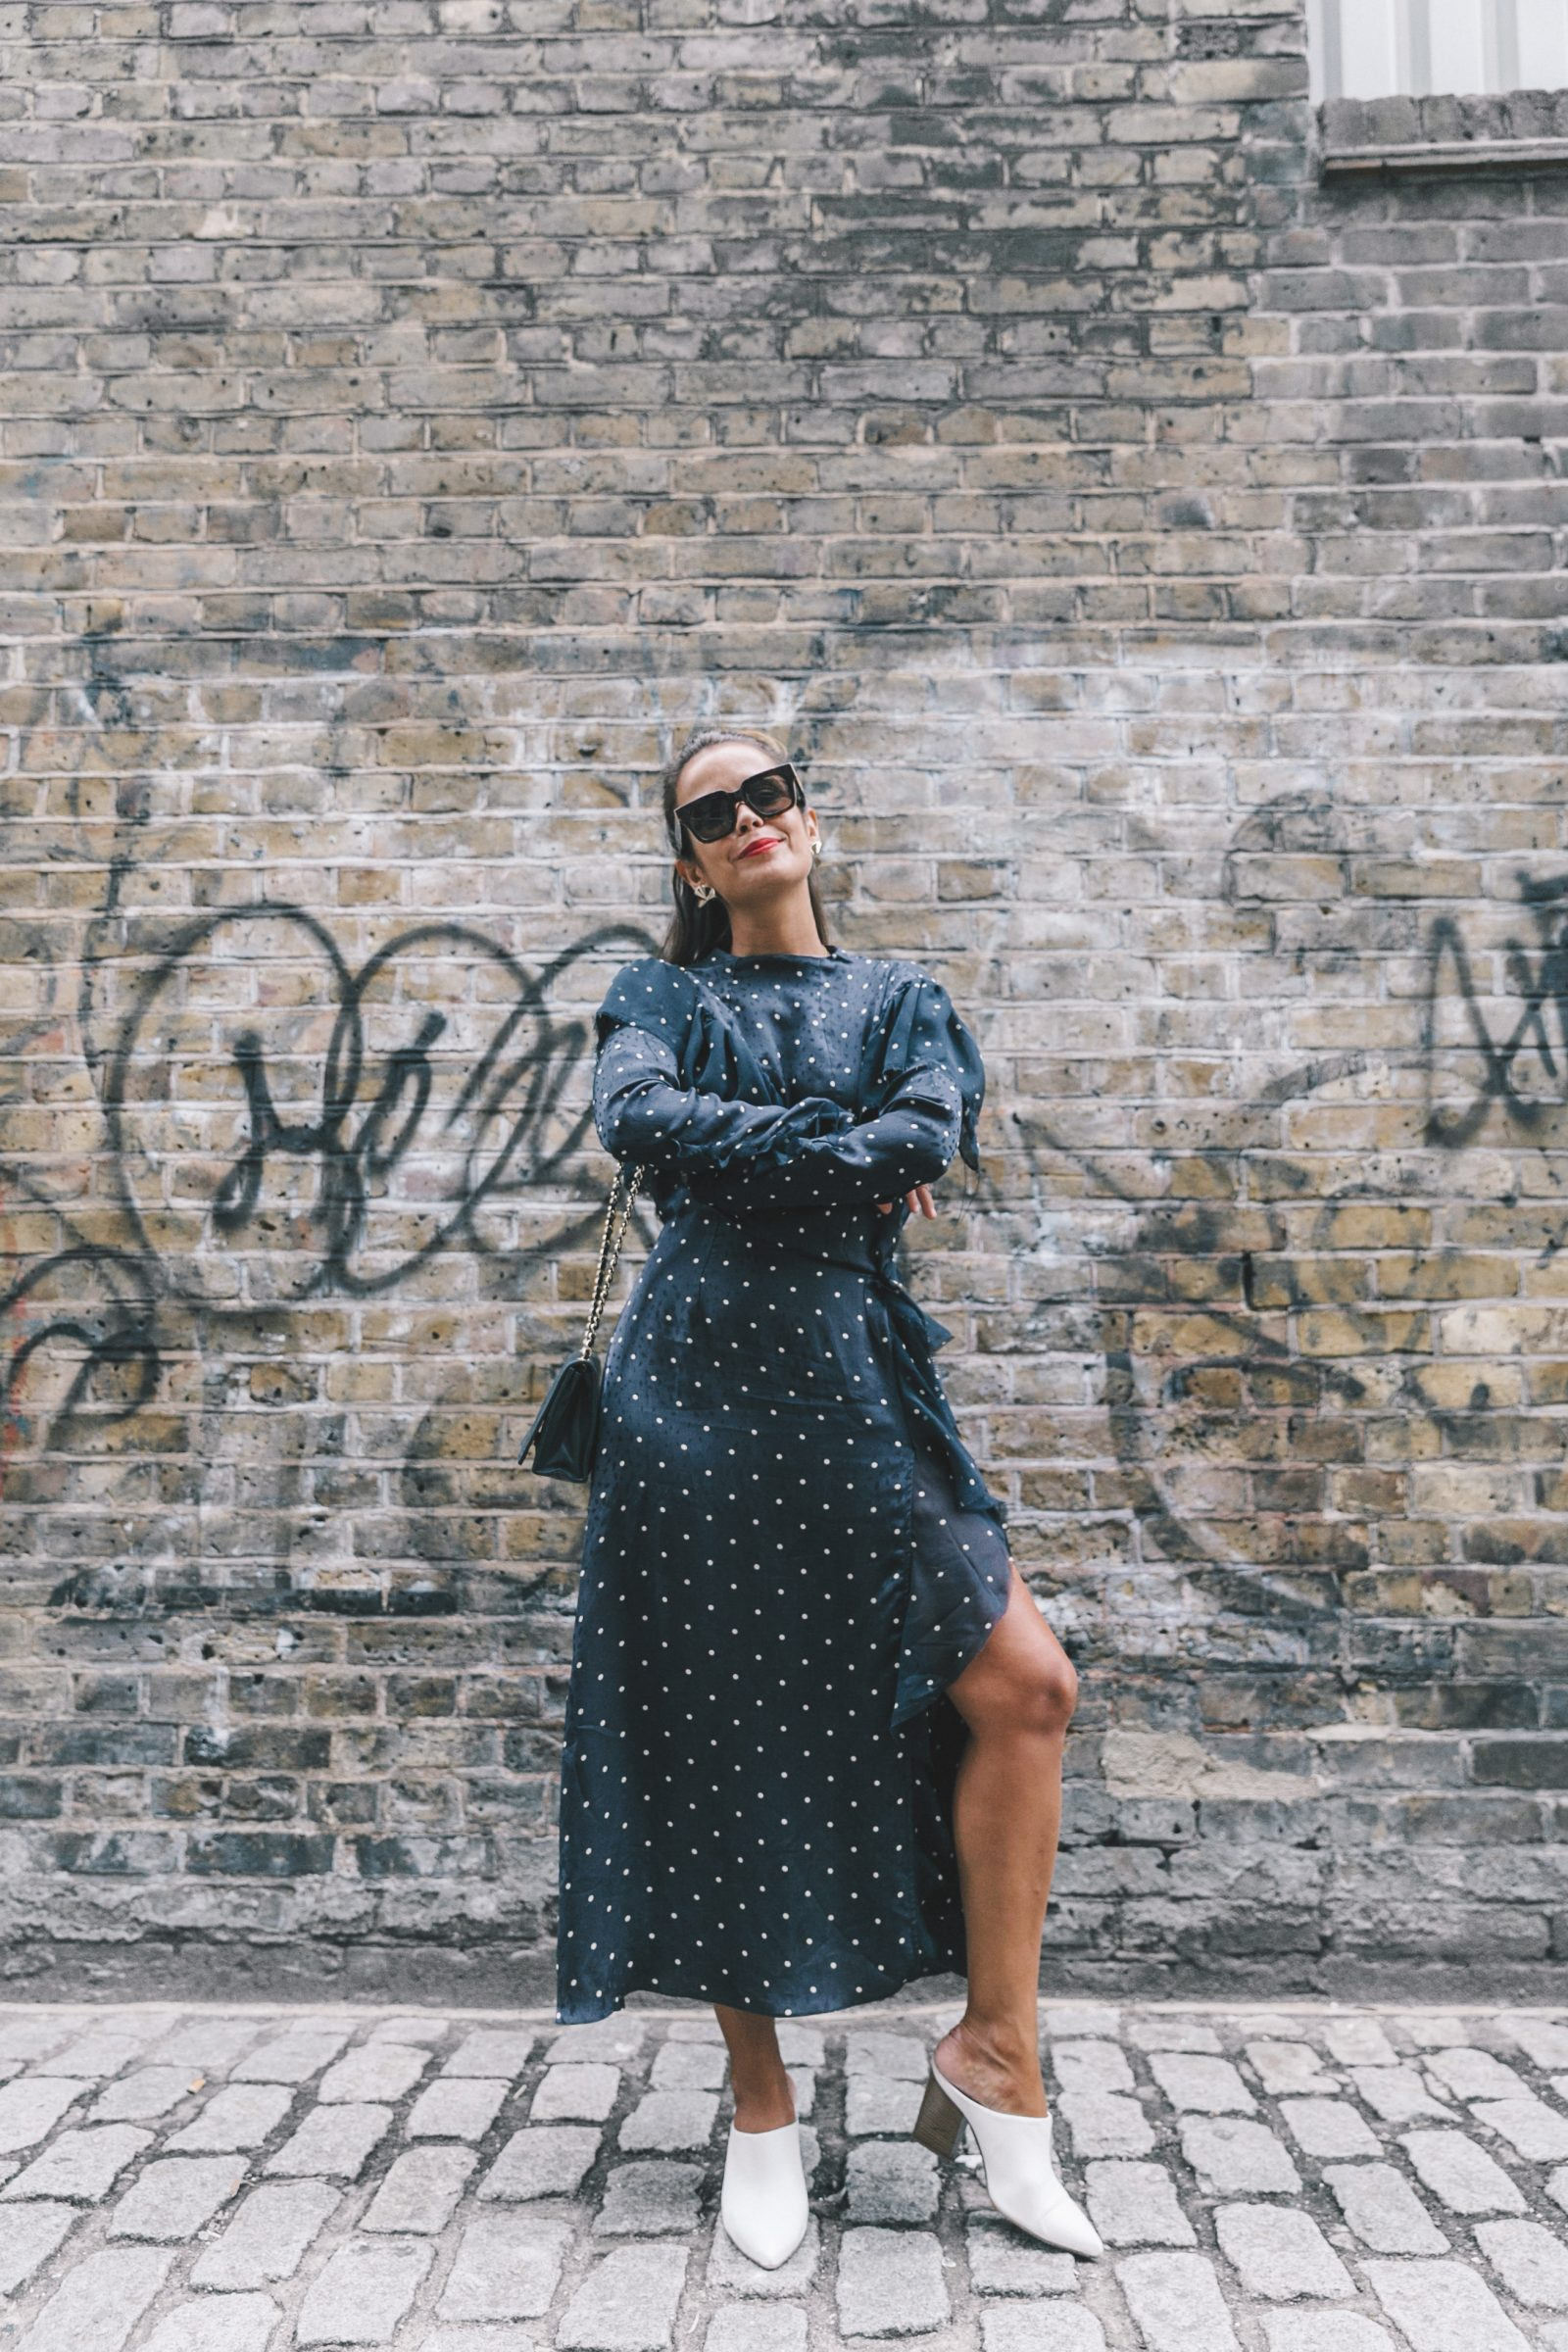 lfw-london_fashion_week_ss17-street_style-outfits-collage_vintage-vintage-topshop_unique-polka_dot_dress-white_mules-topshop_boutique-adenorah-9